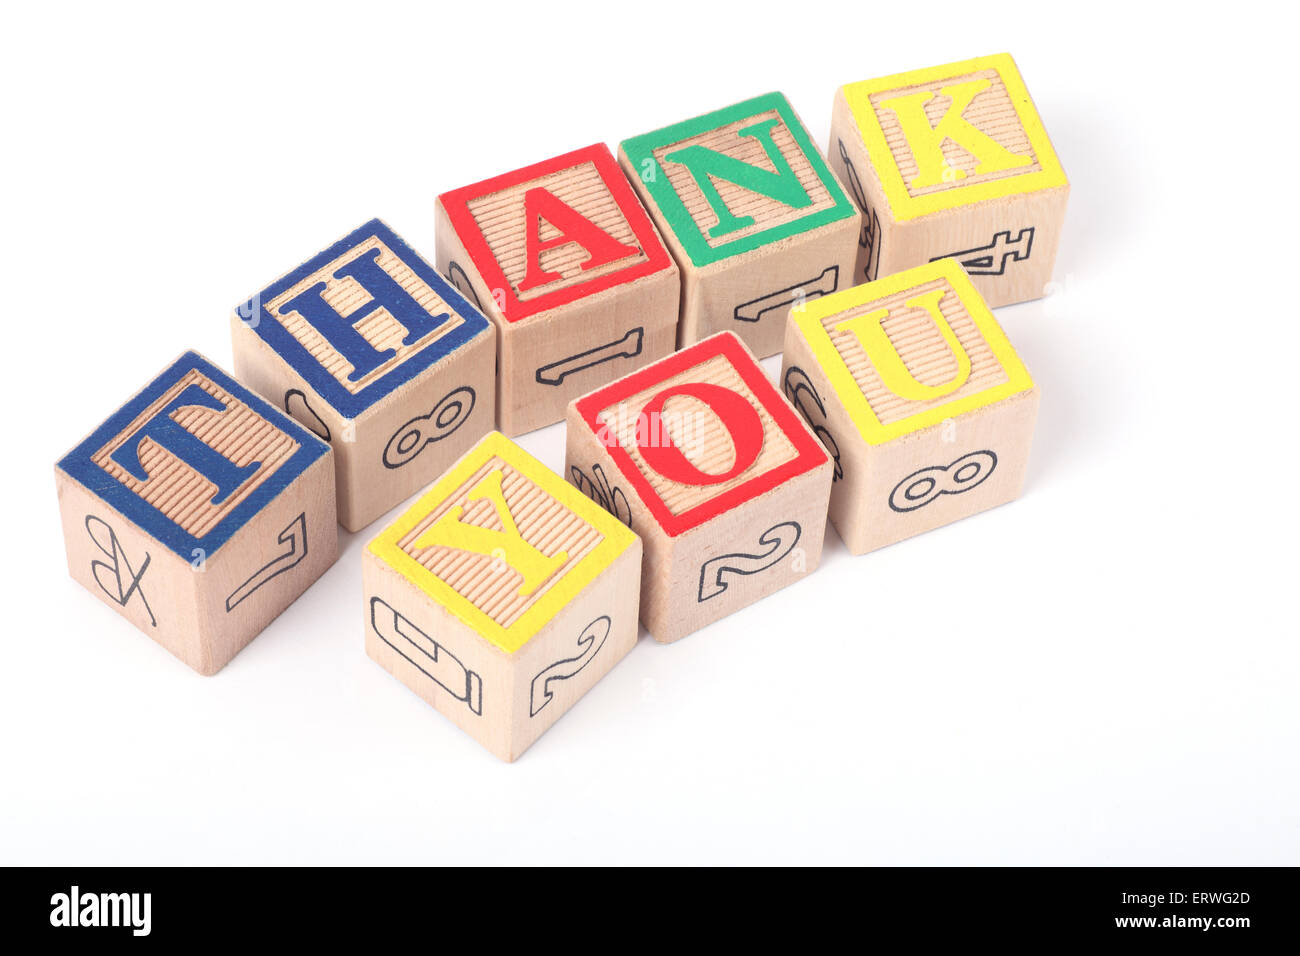 Thank You written out of childrens building blocks - Stock Image